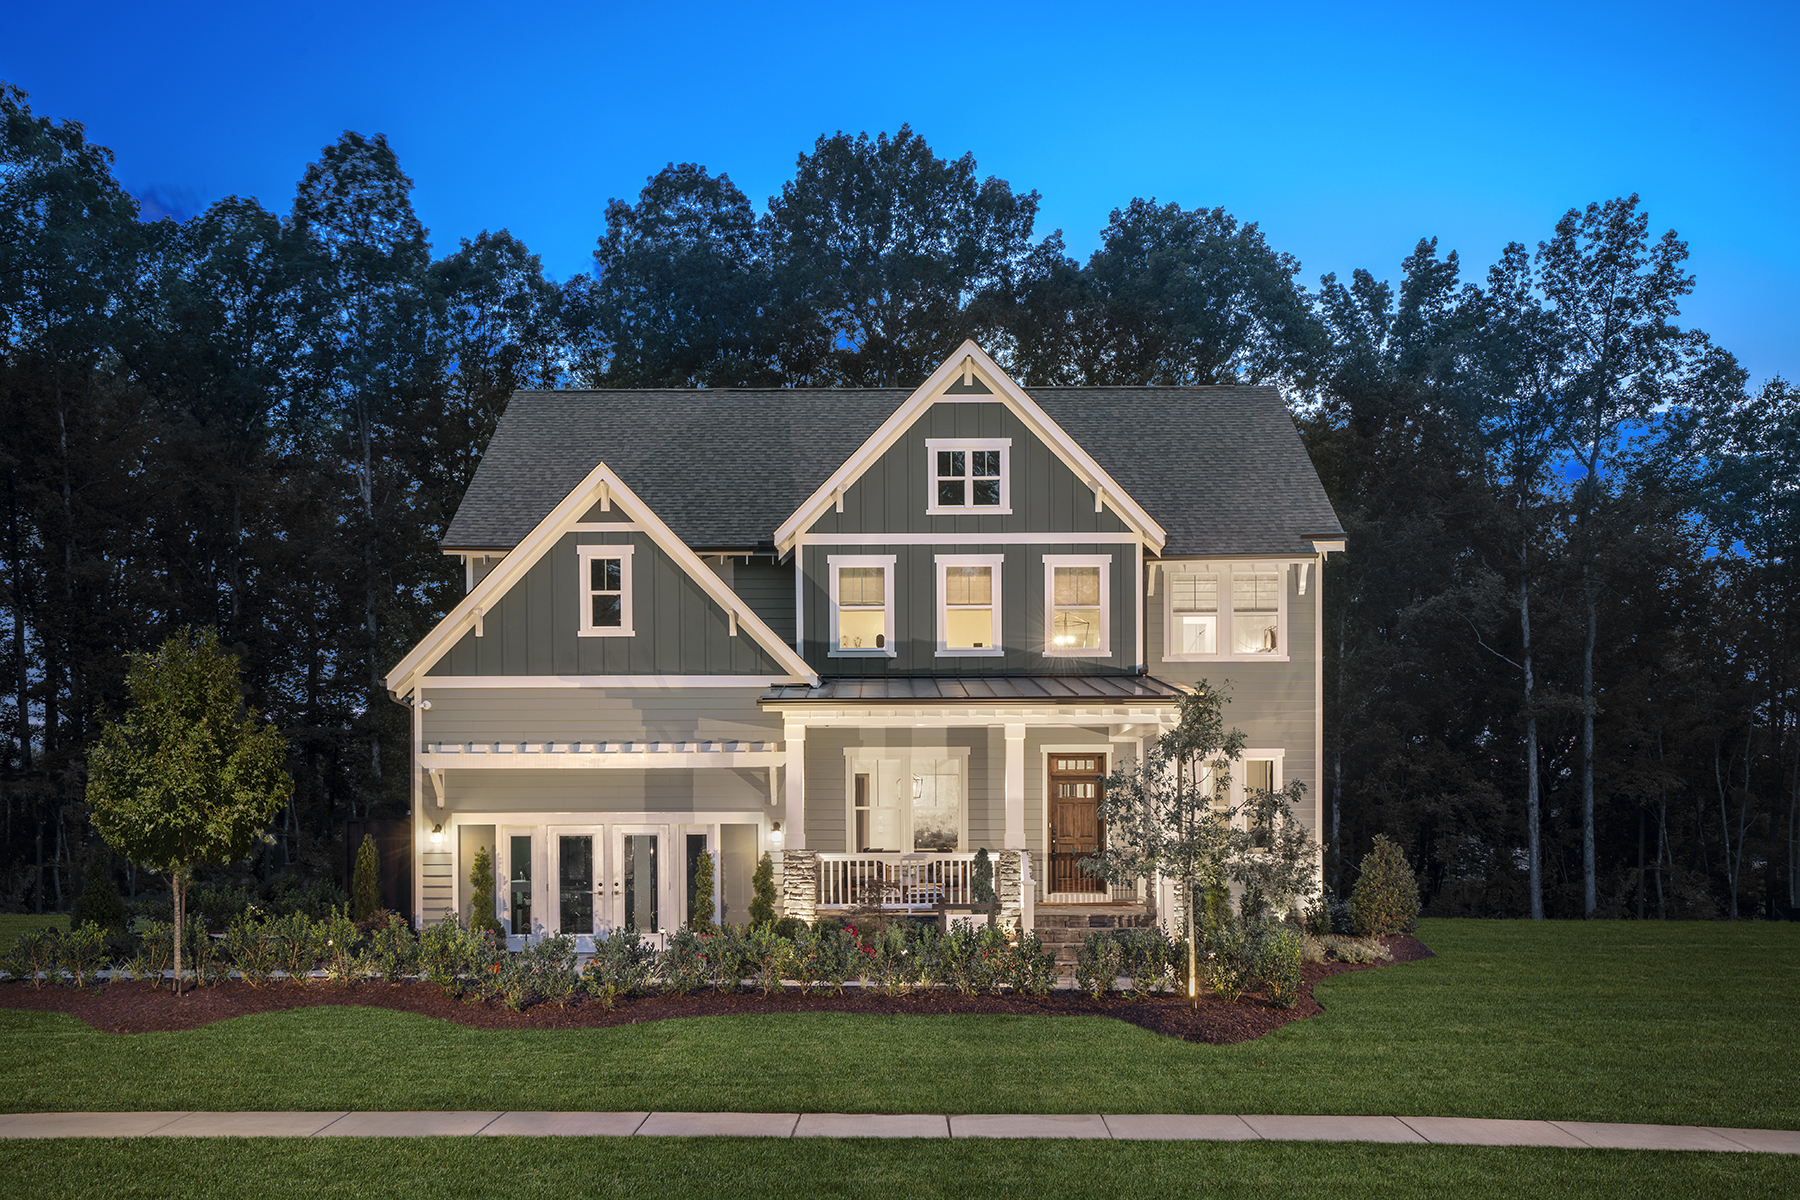 The Greenville Model At Buckhorn Preserve In Apex NC